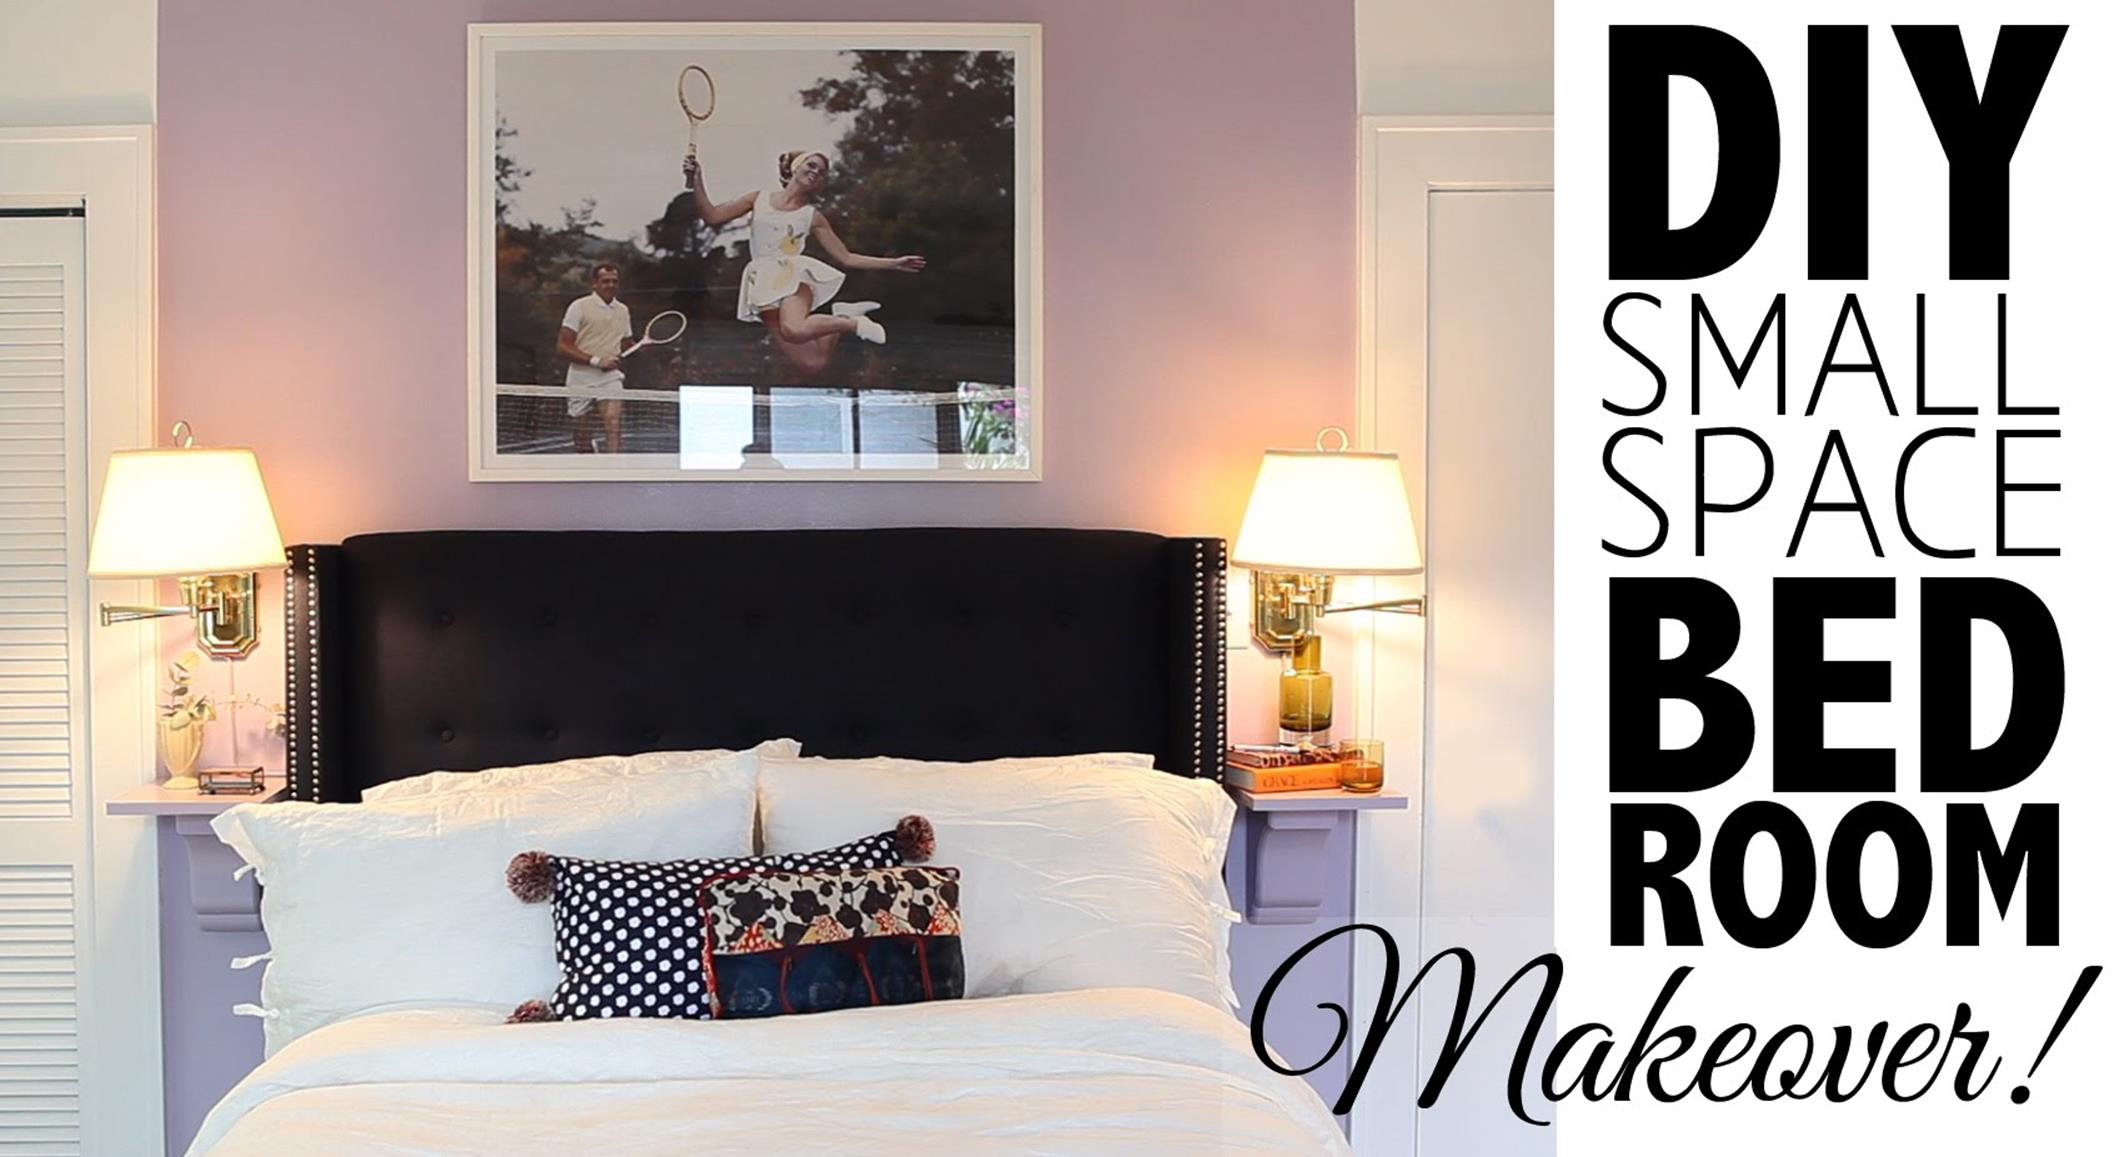 DIY Small Bedroom Makeover On a Budget 23